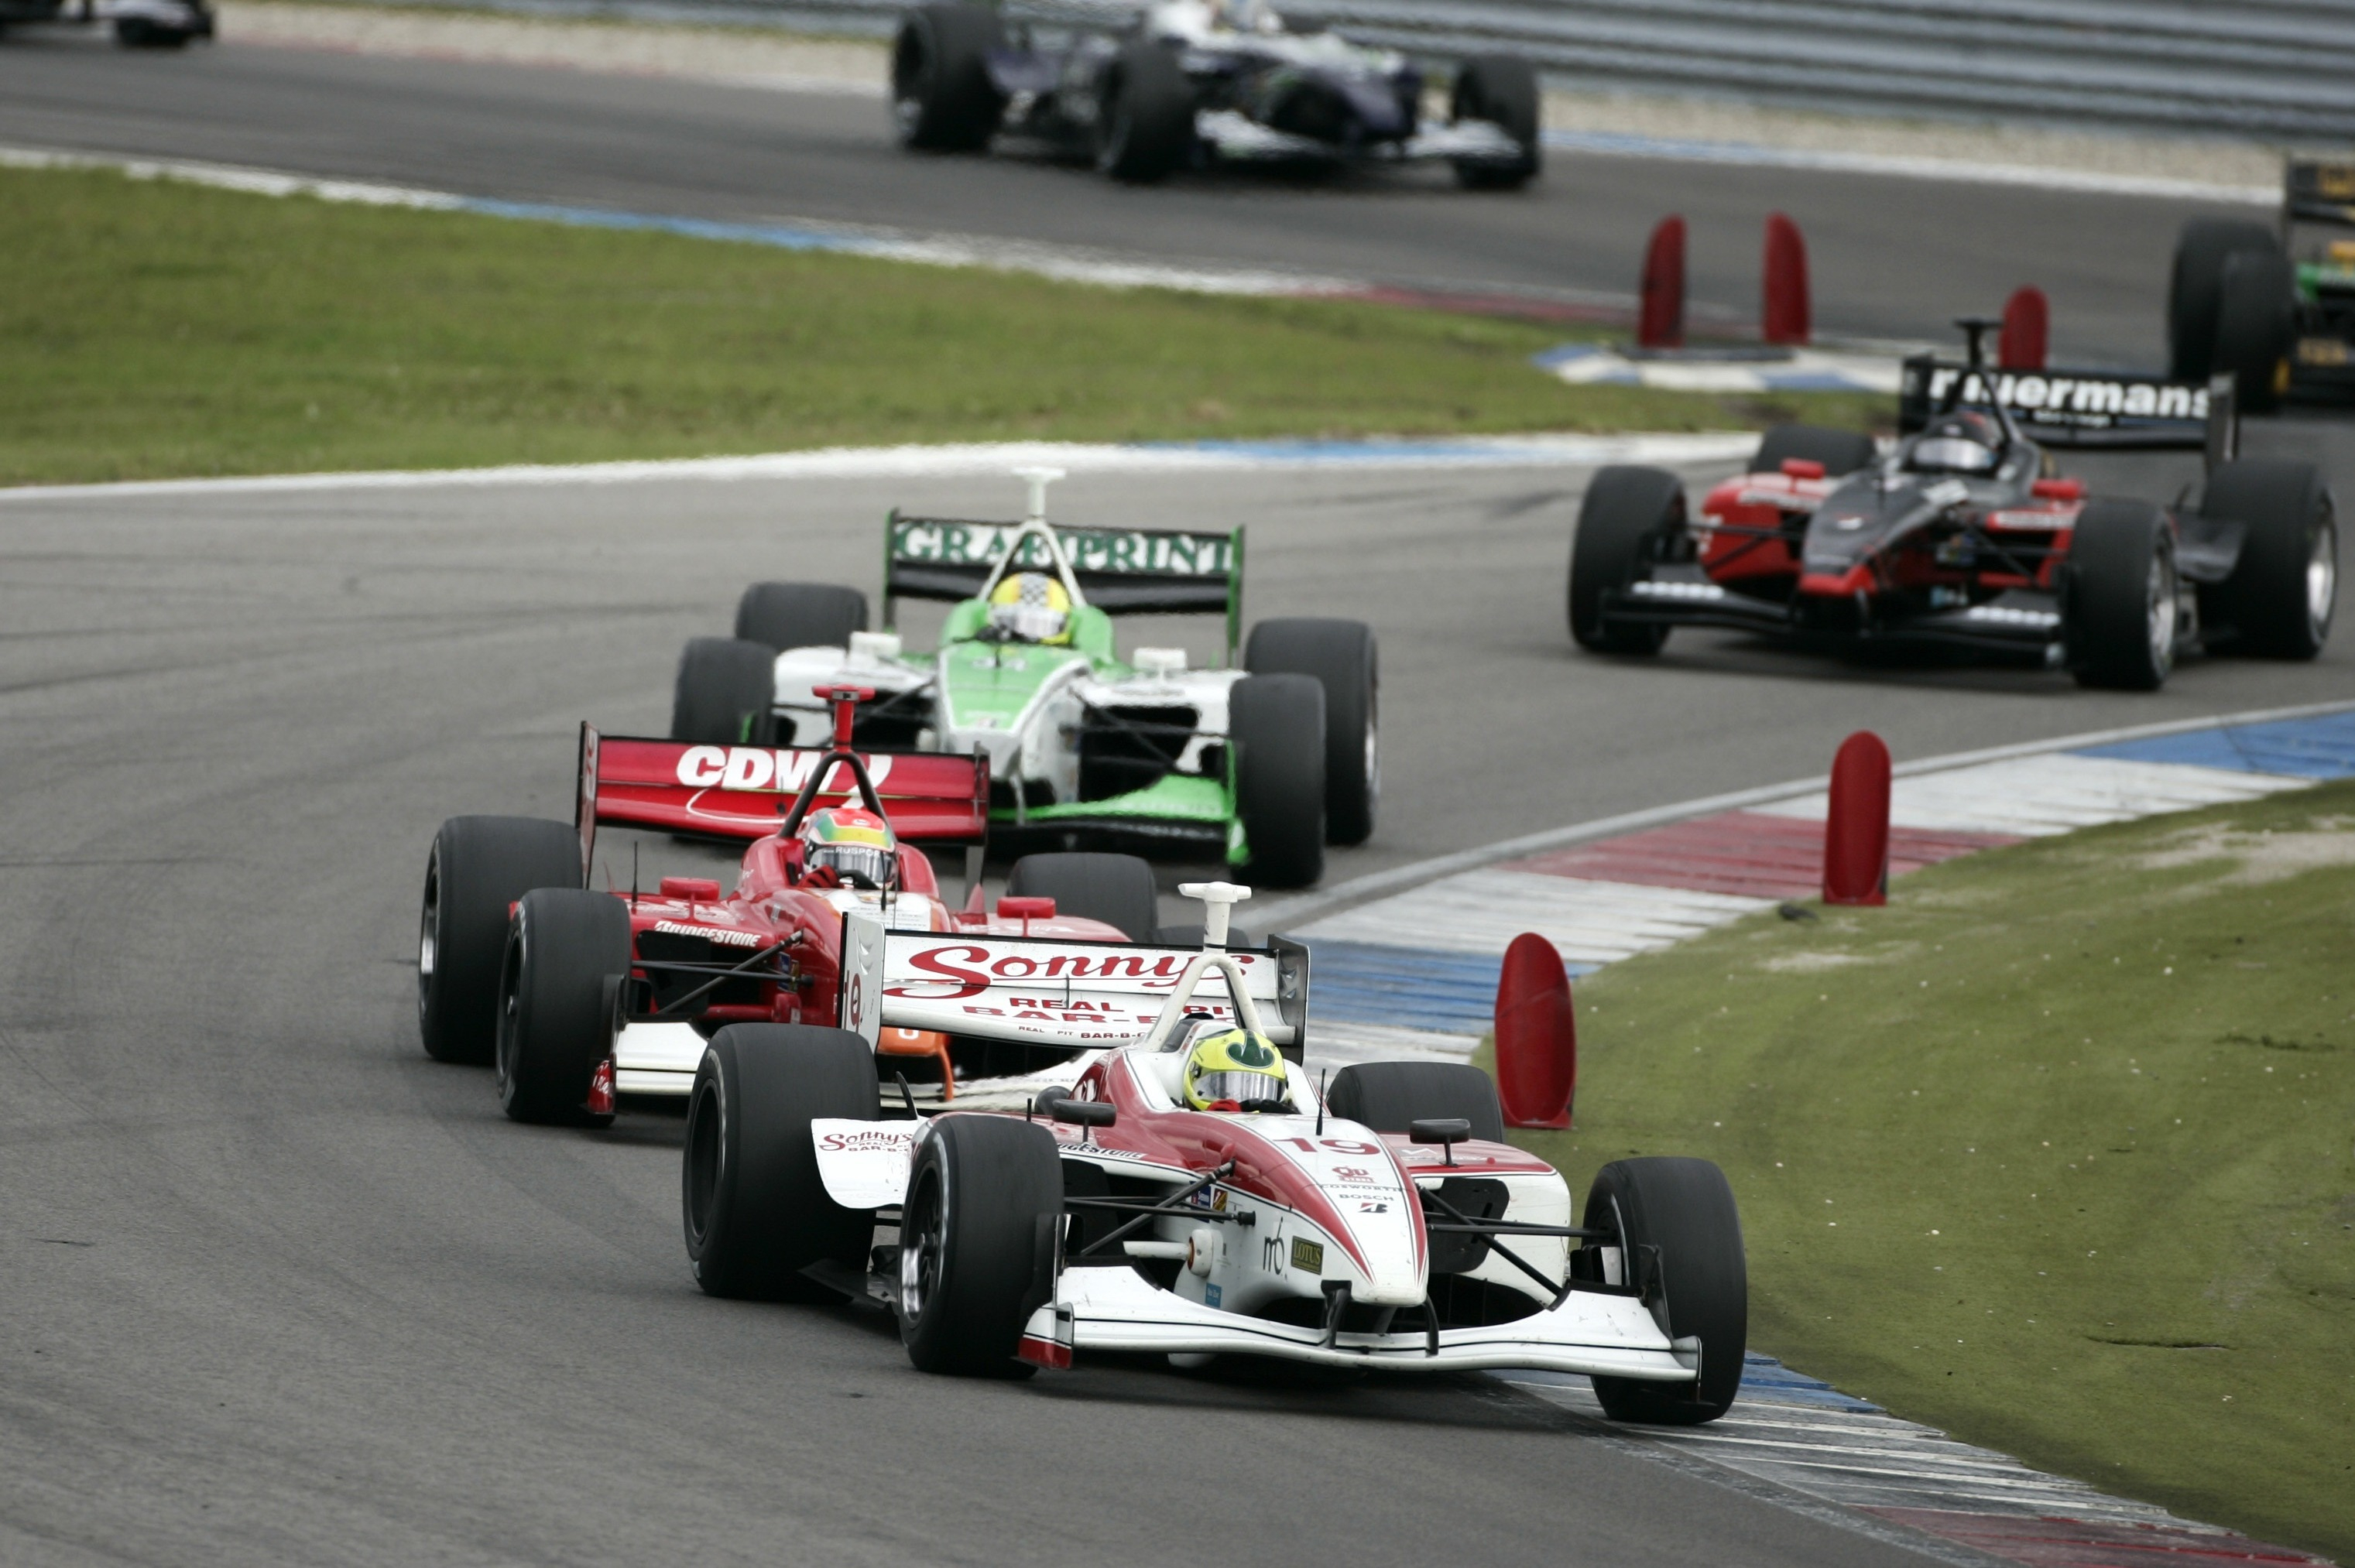 Bruno Junqueira leads Justin Wilson through a chicane at Assen in 2007 in the last season before Champ Car/IRL reunification